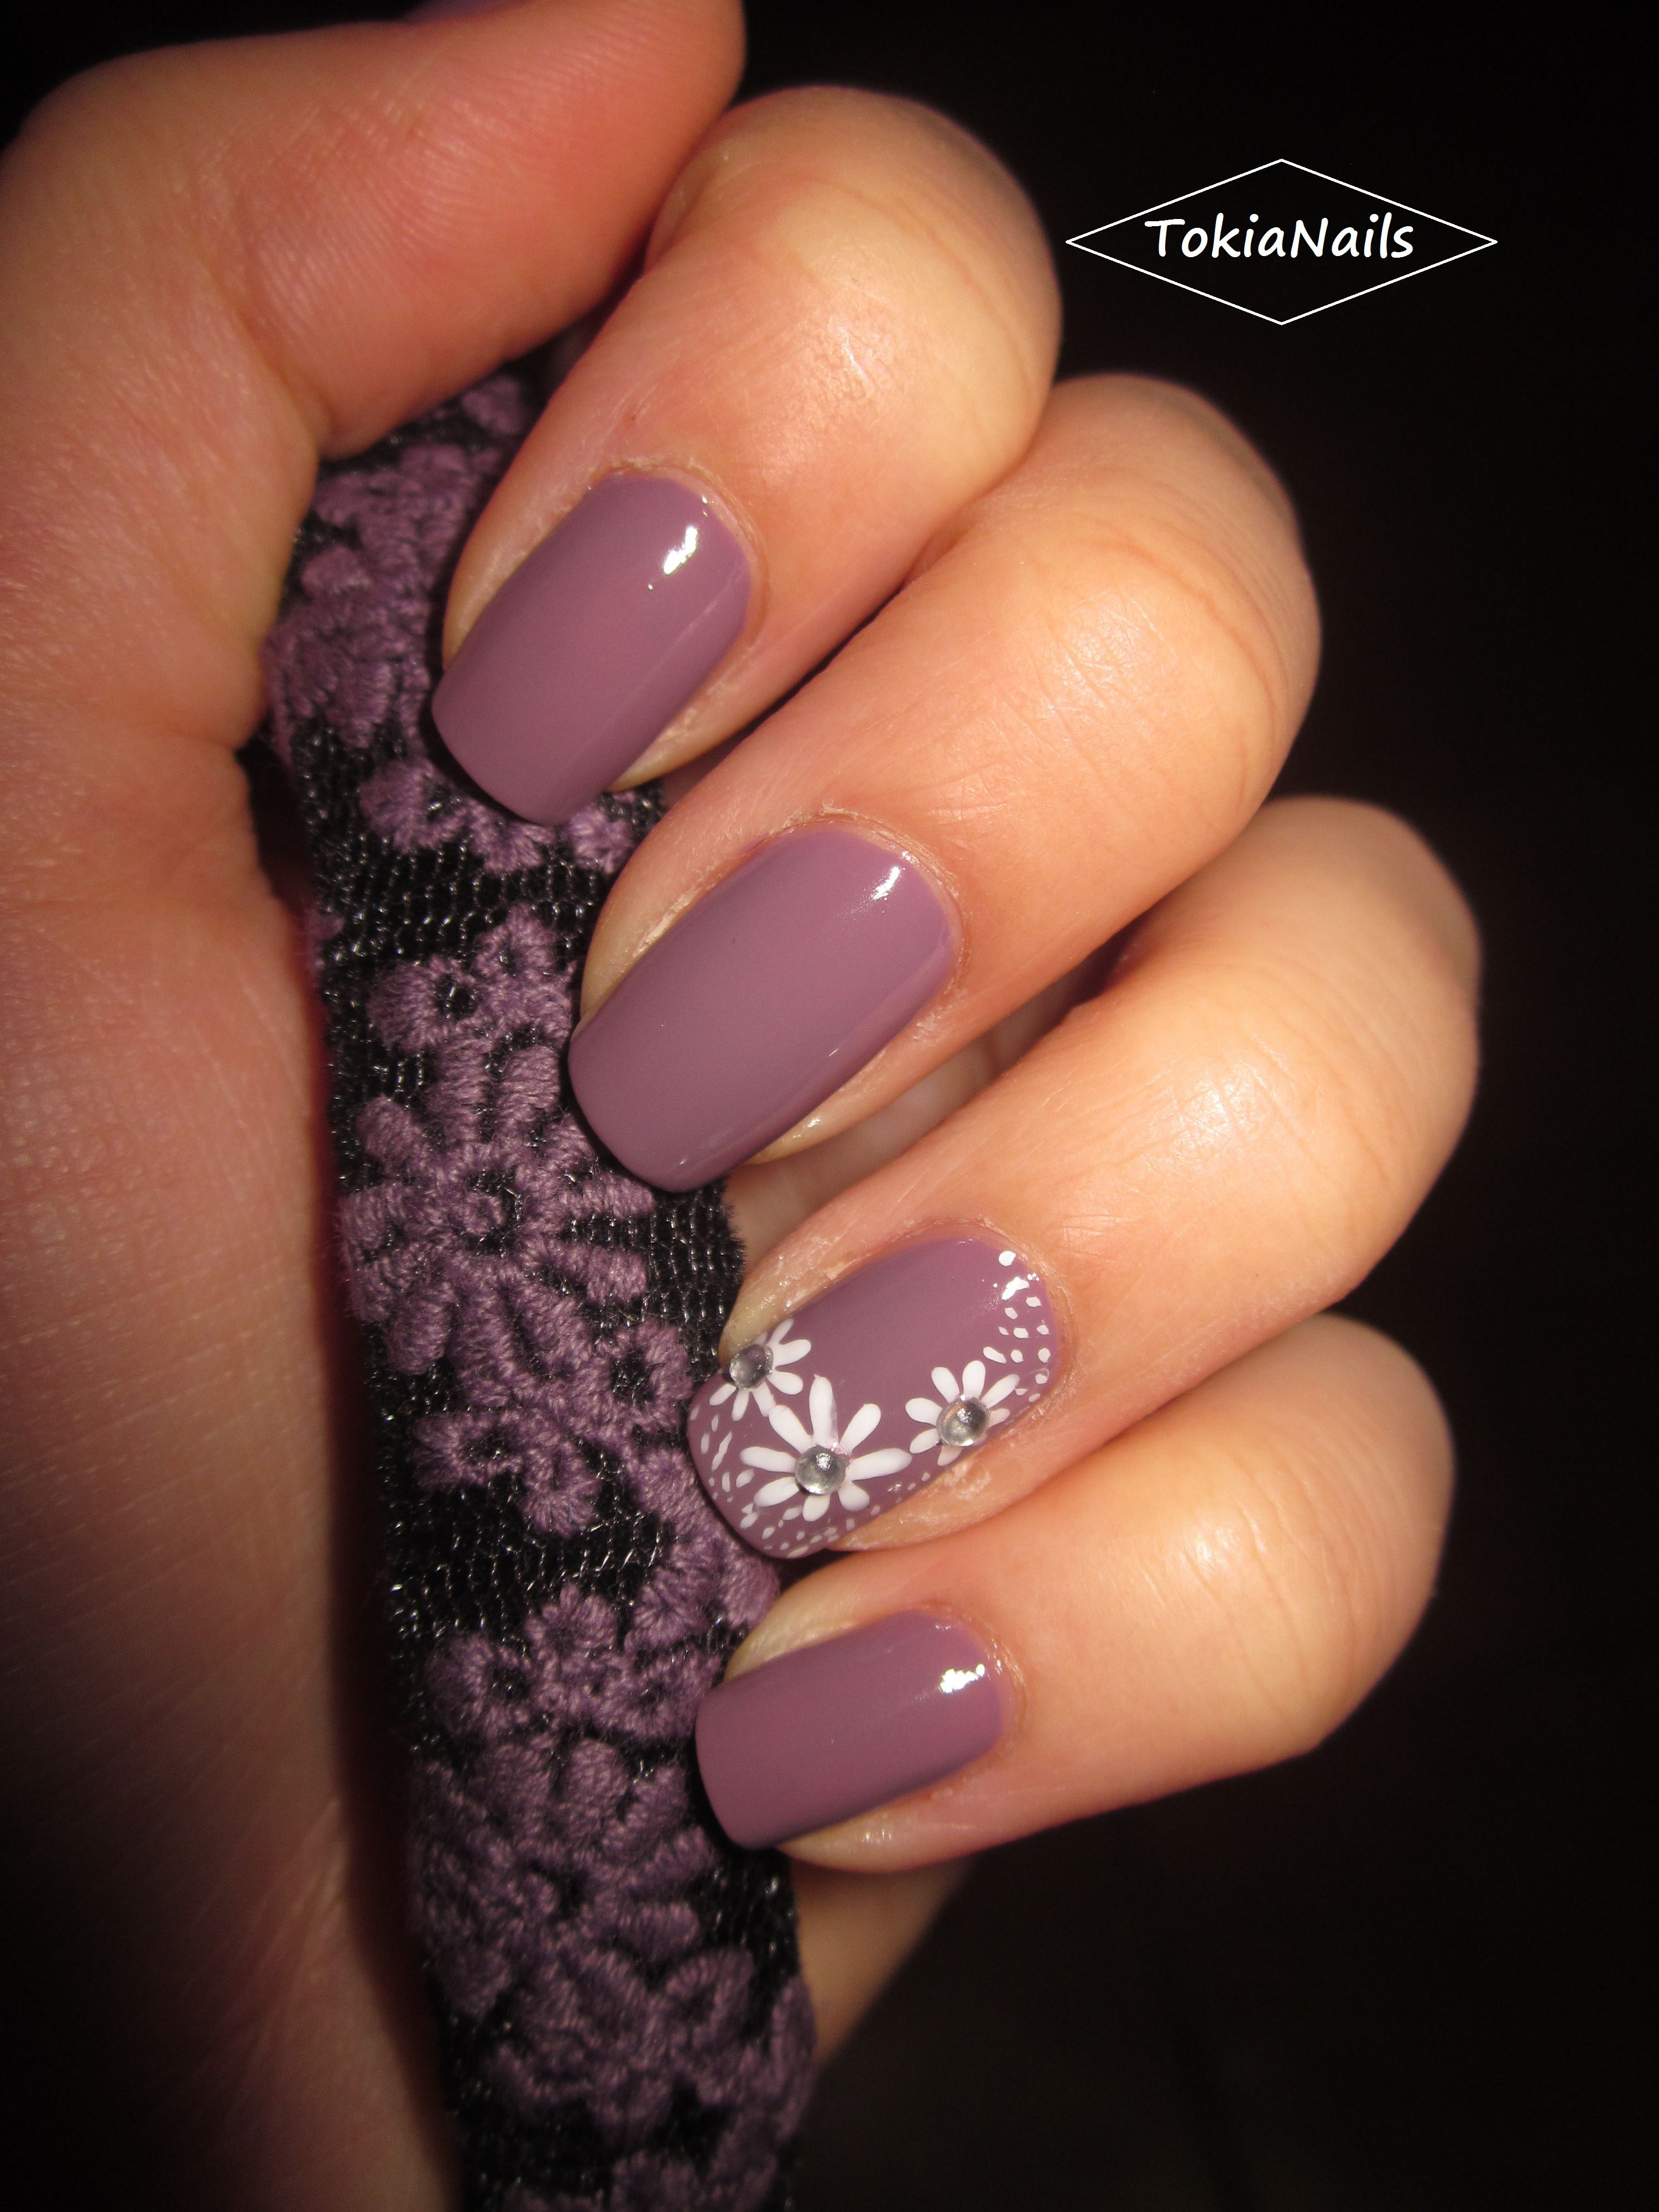 flowers   Nail\'d It!   Pinterest   Flowers, Manicure and Nail nail